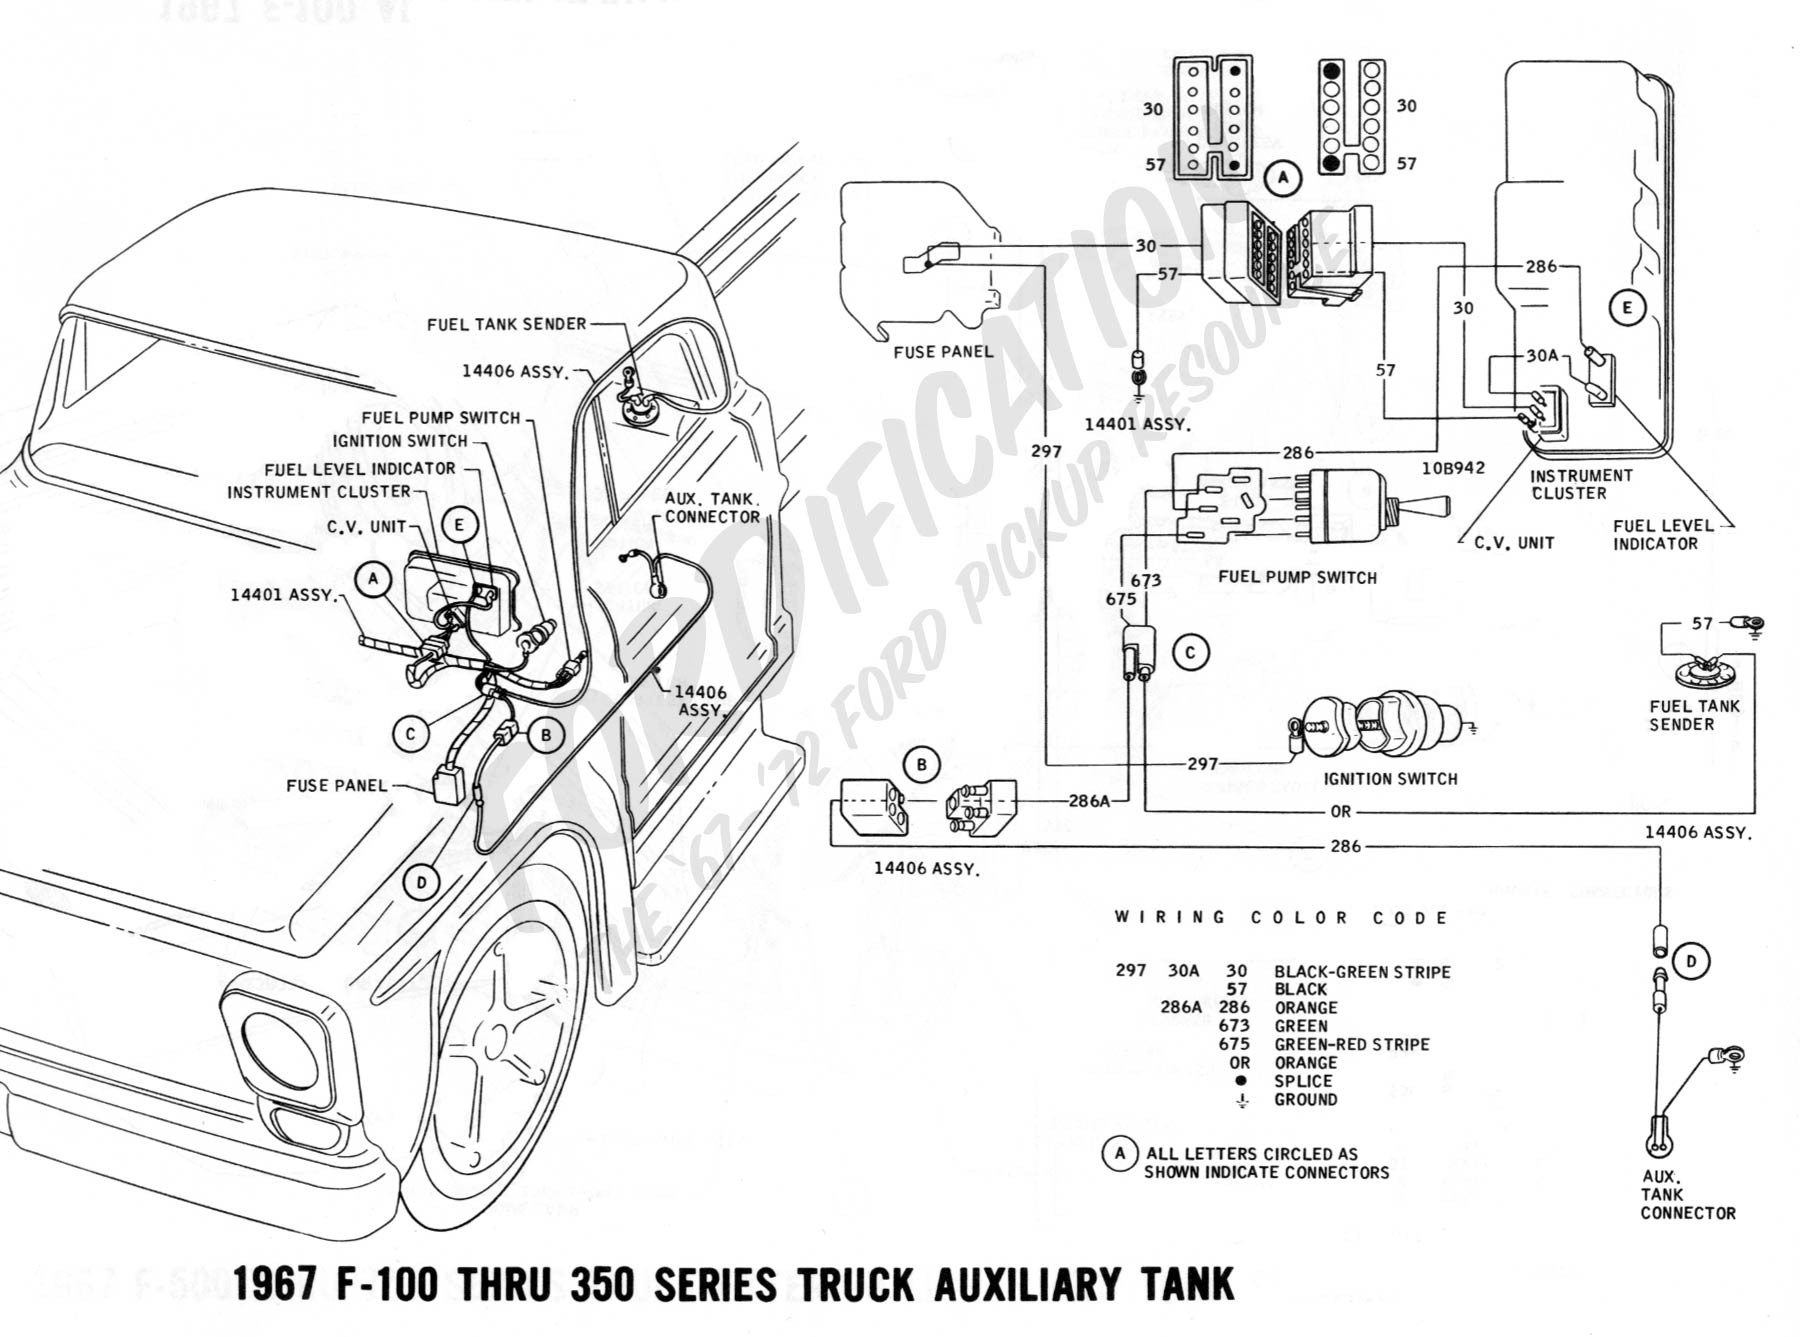 1992 ford f 150 wiring diagram single phase motors diagrams f150 parts my